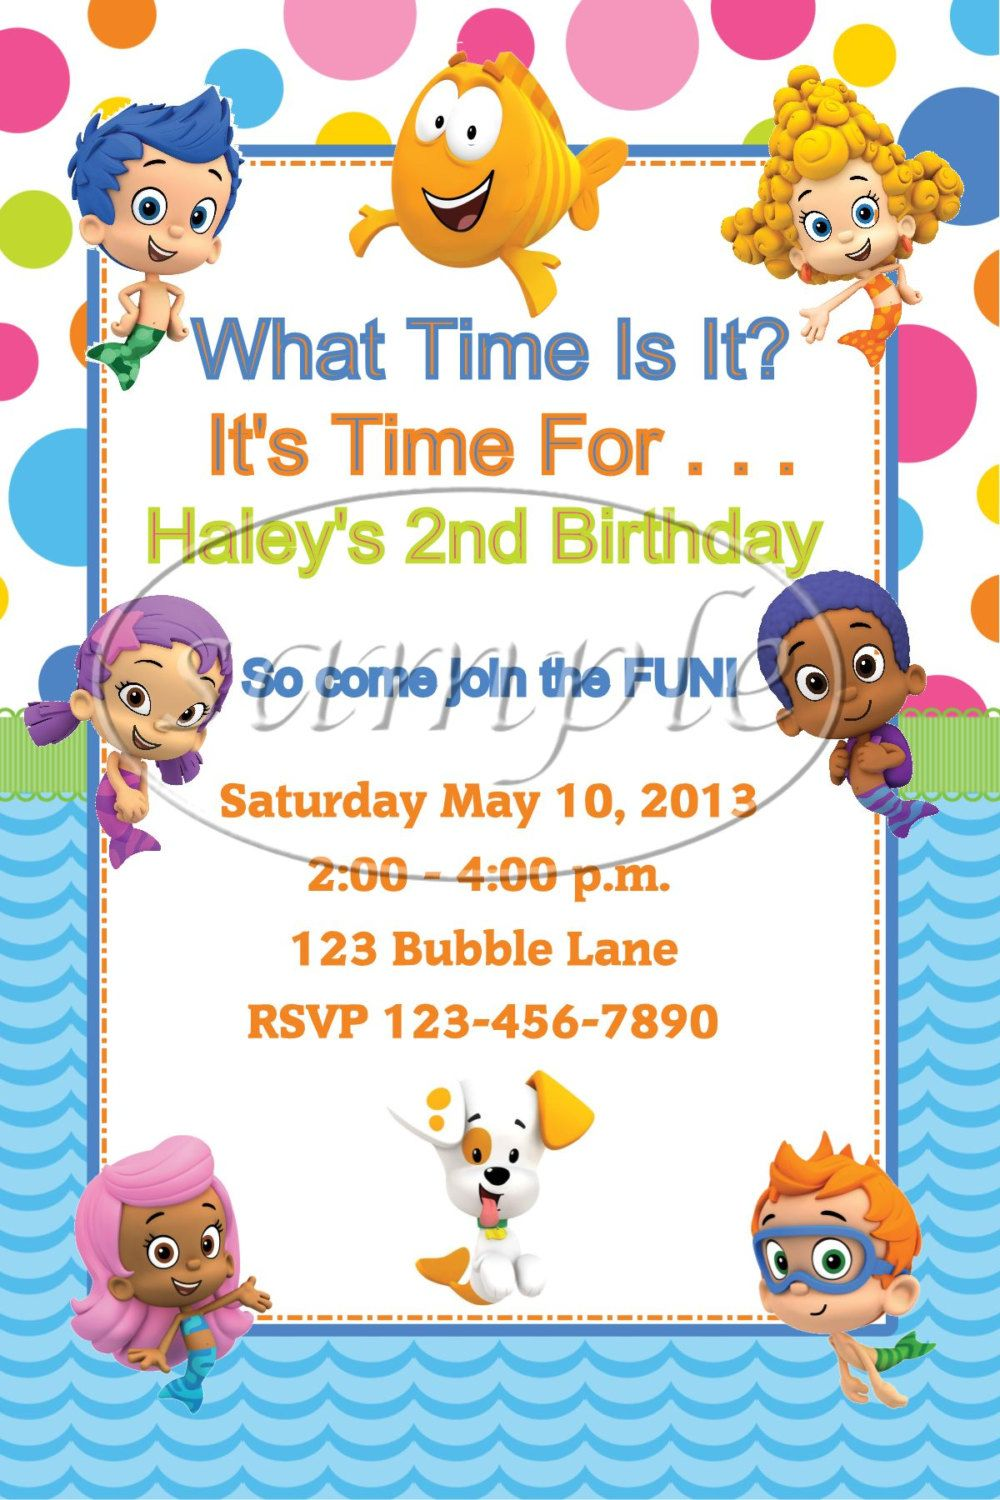 Bubble Guppies Personalized Party Invitations by CraftythingsbyKim, $1.25